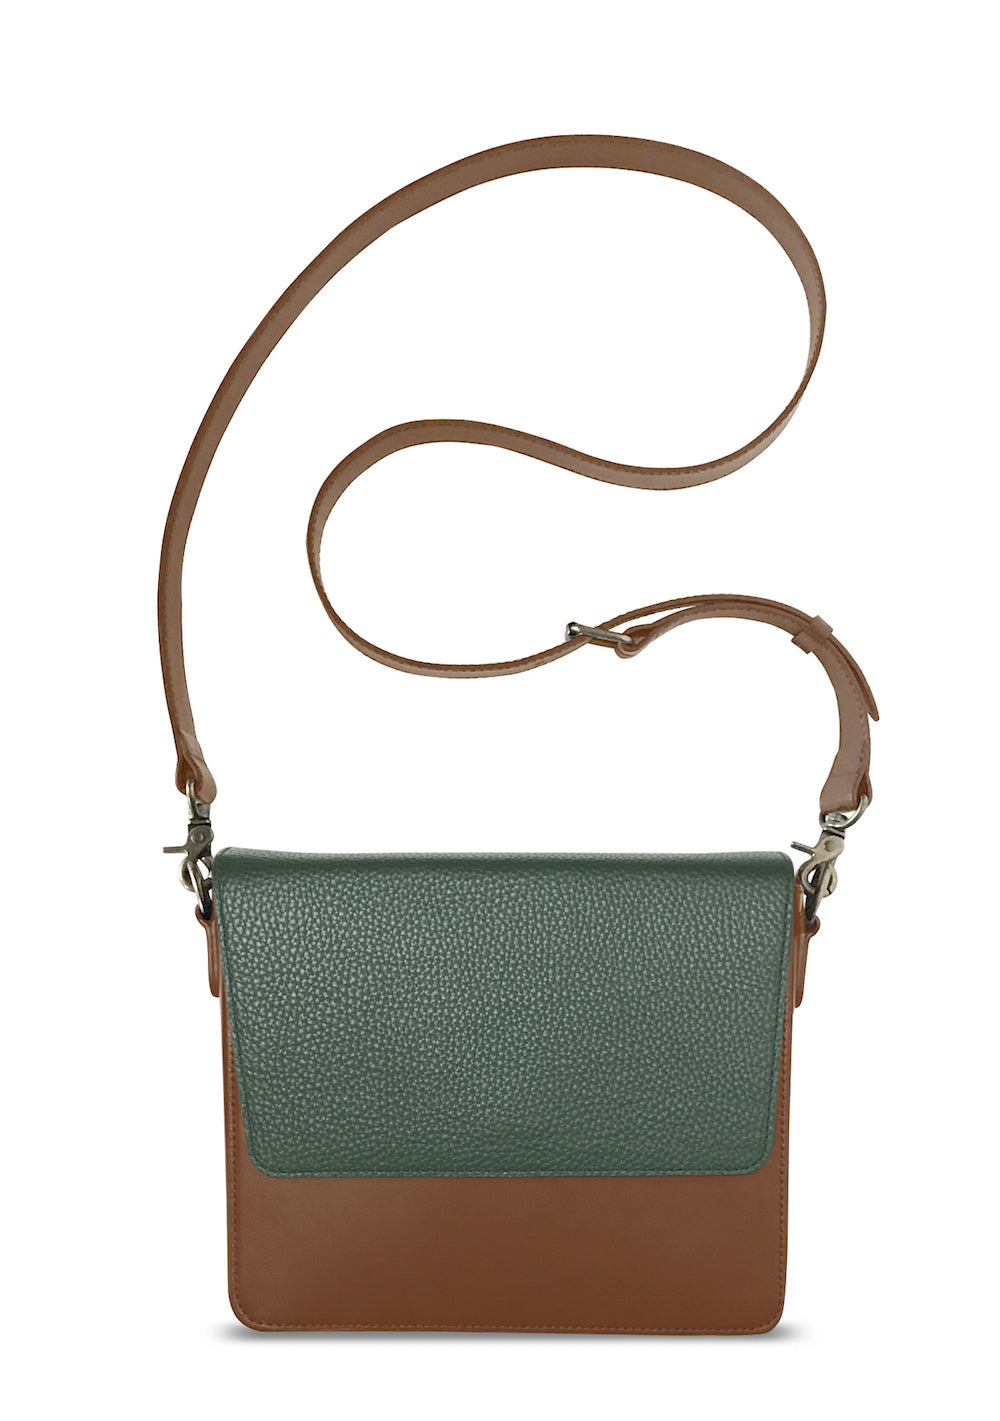 Brown Rectangular Body with Dark Olive Green Rectangular Flap